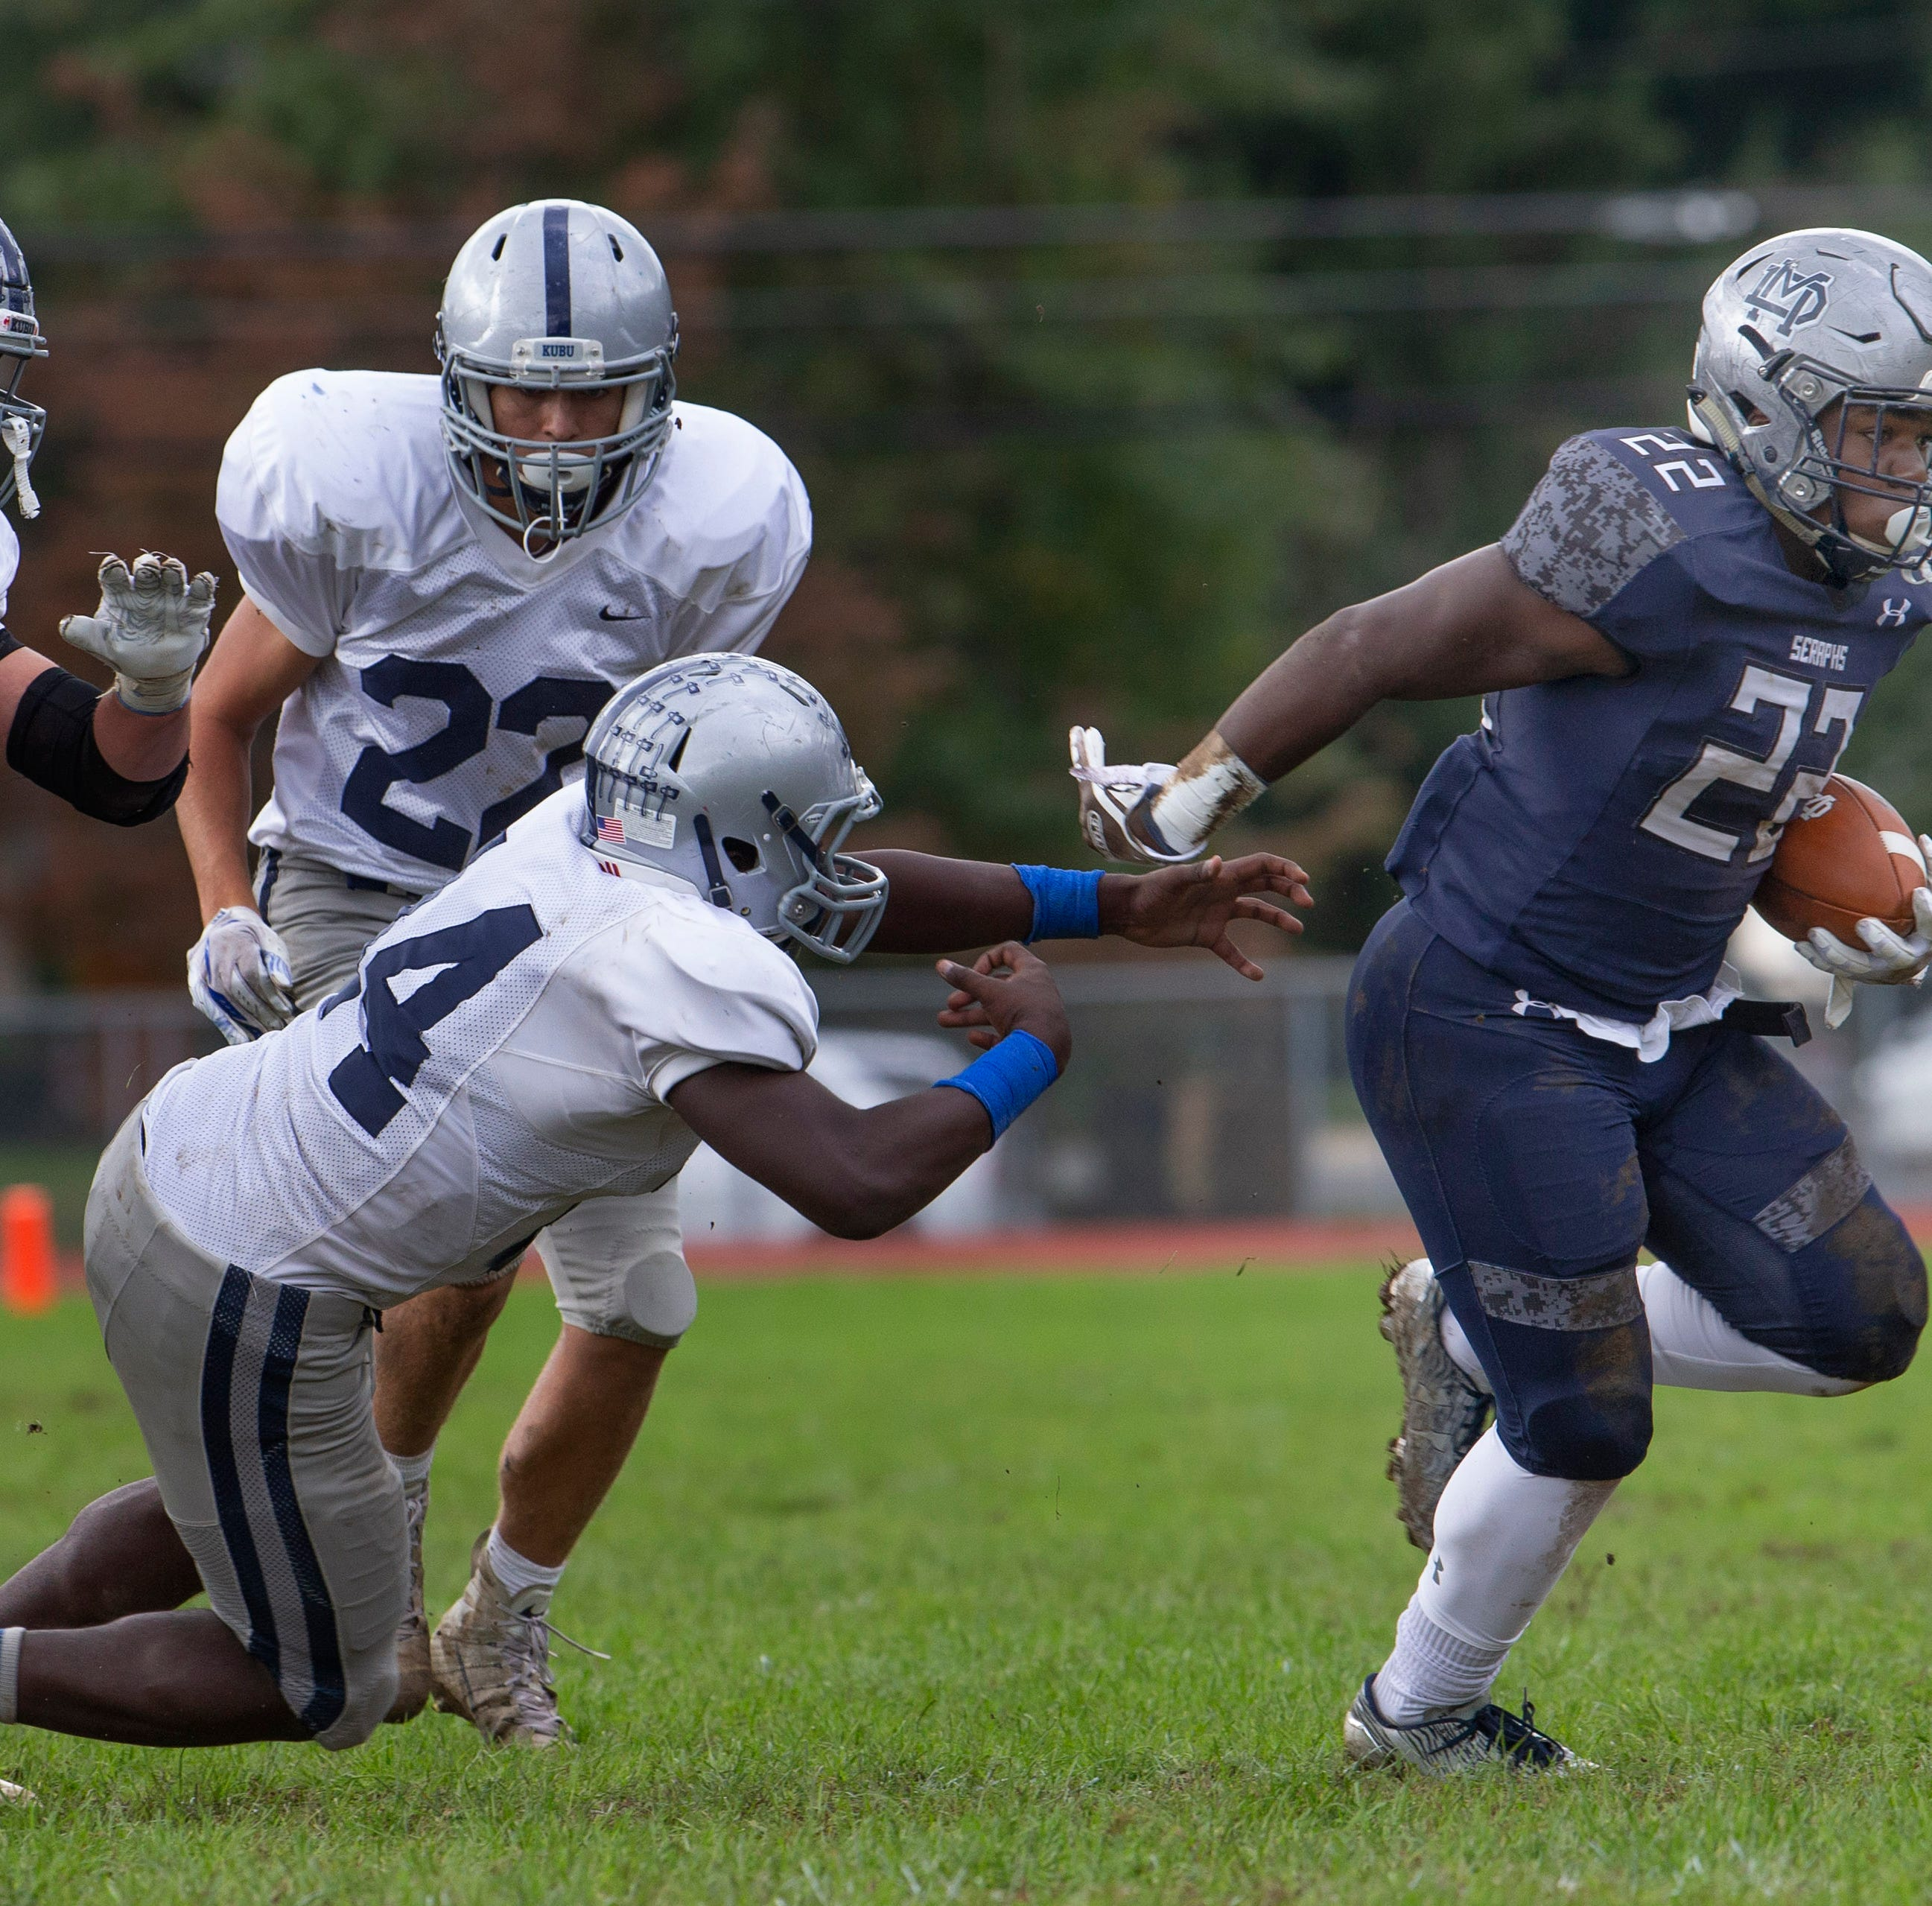 NJ Football: Week 7 Shore Conference scores, recaps, photos, videos